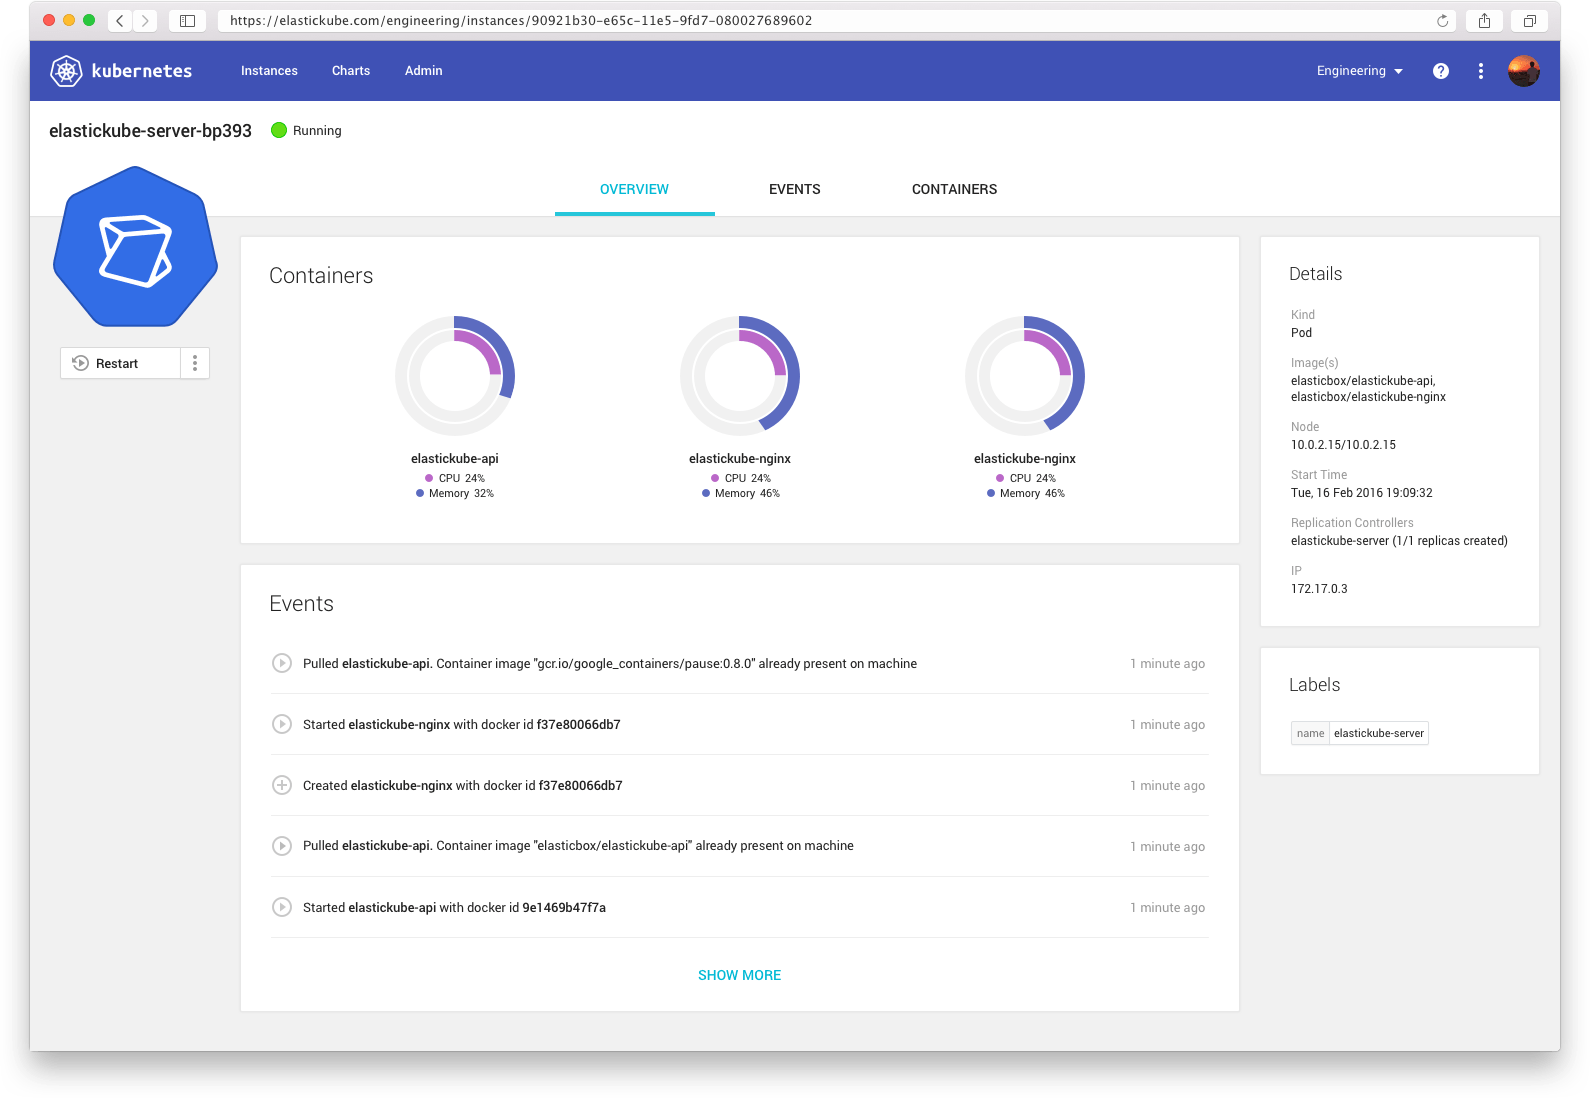 ElasticKube cloud platform management for real-time access